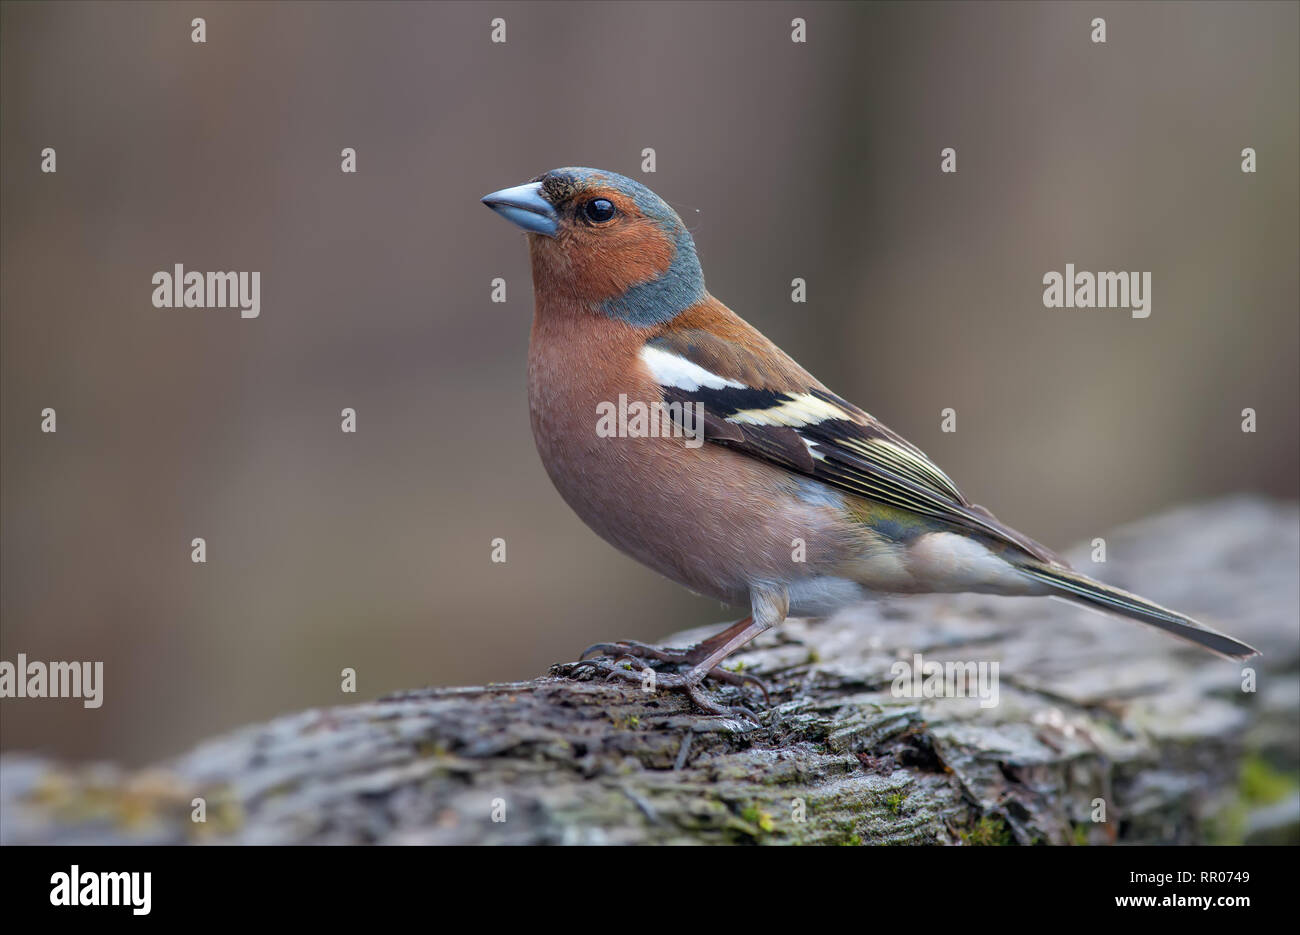 Male Common chaffinch great posing in early spring - Stock Image